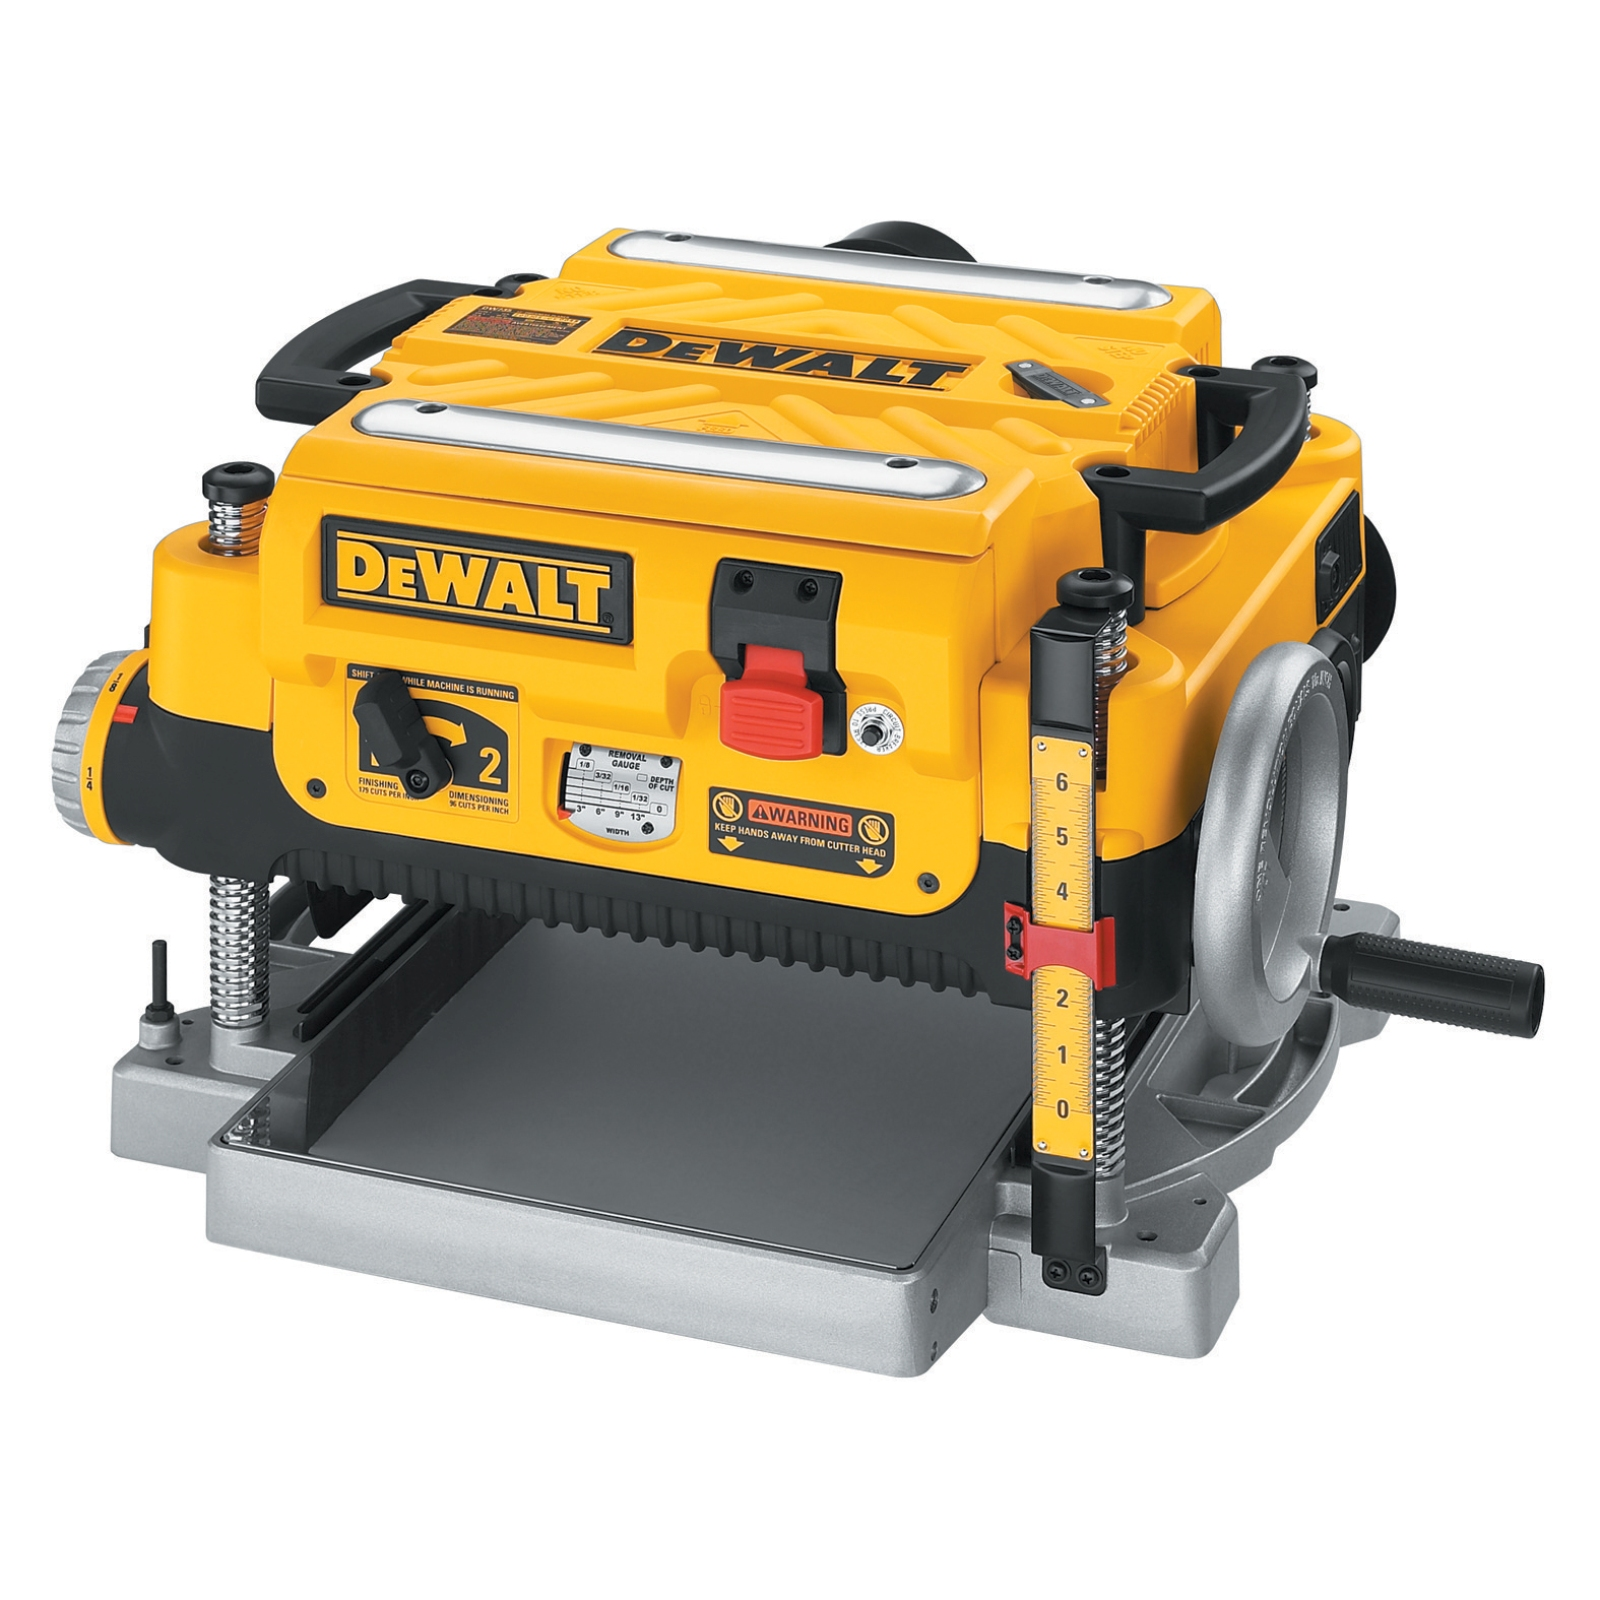 DeWalt Heavy-Duty 13 In. Thickness Planer